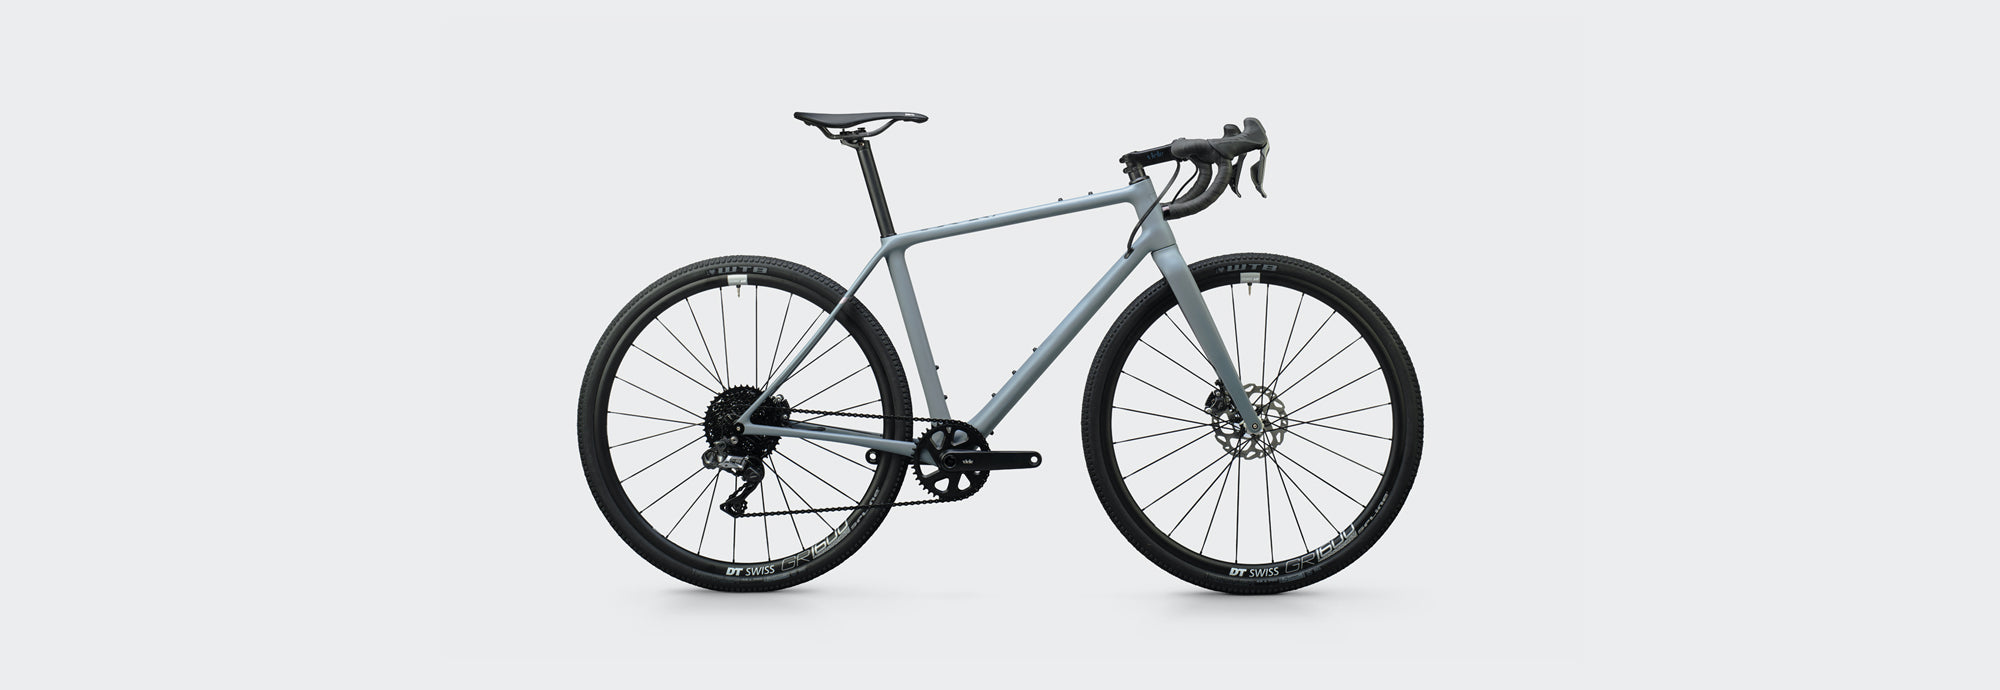 Vielo V+1 Carbon Gravel Bikes UK